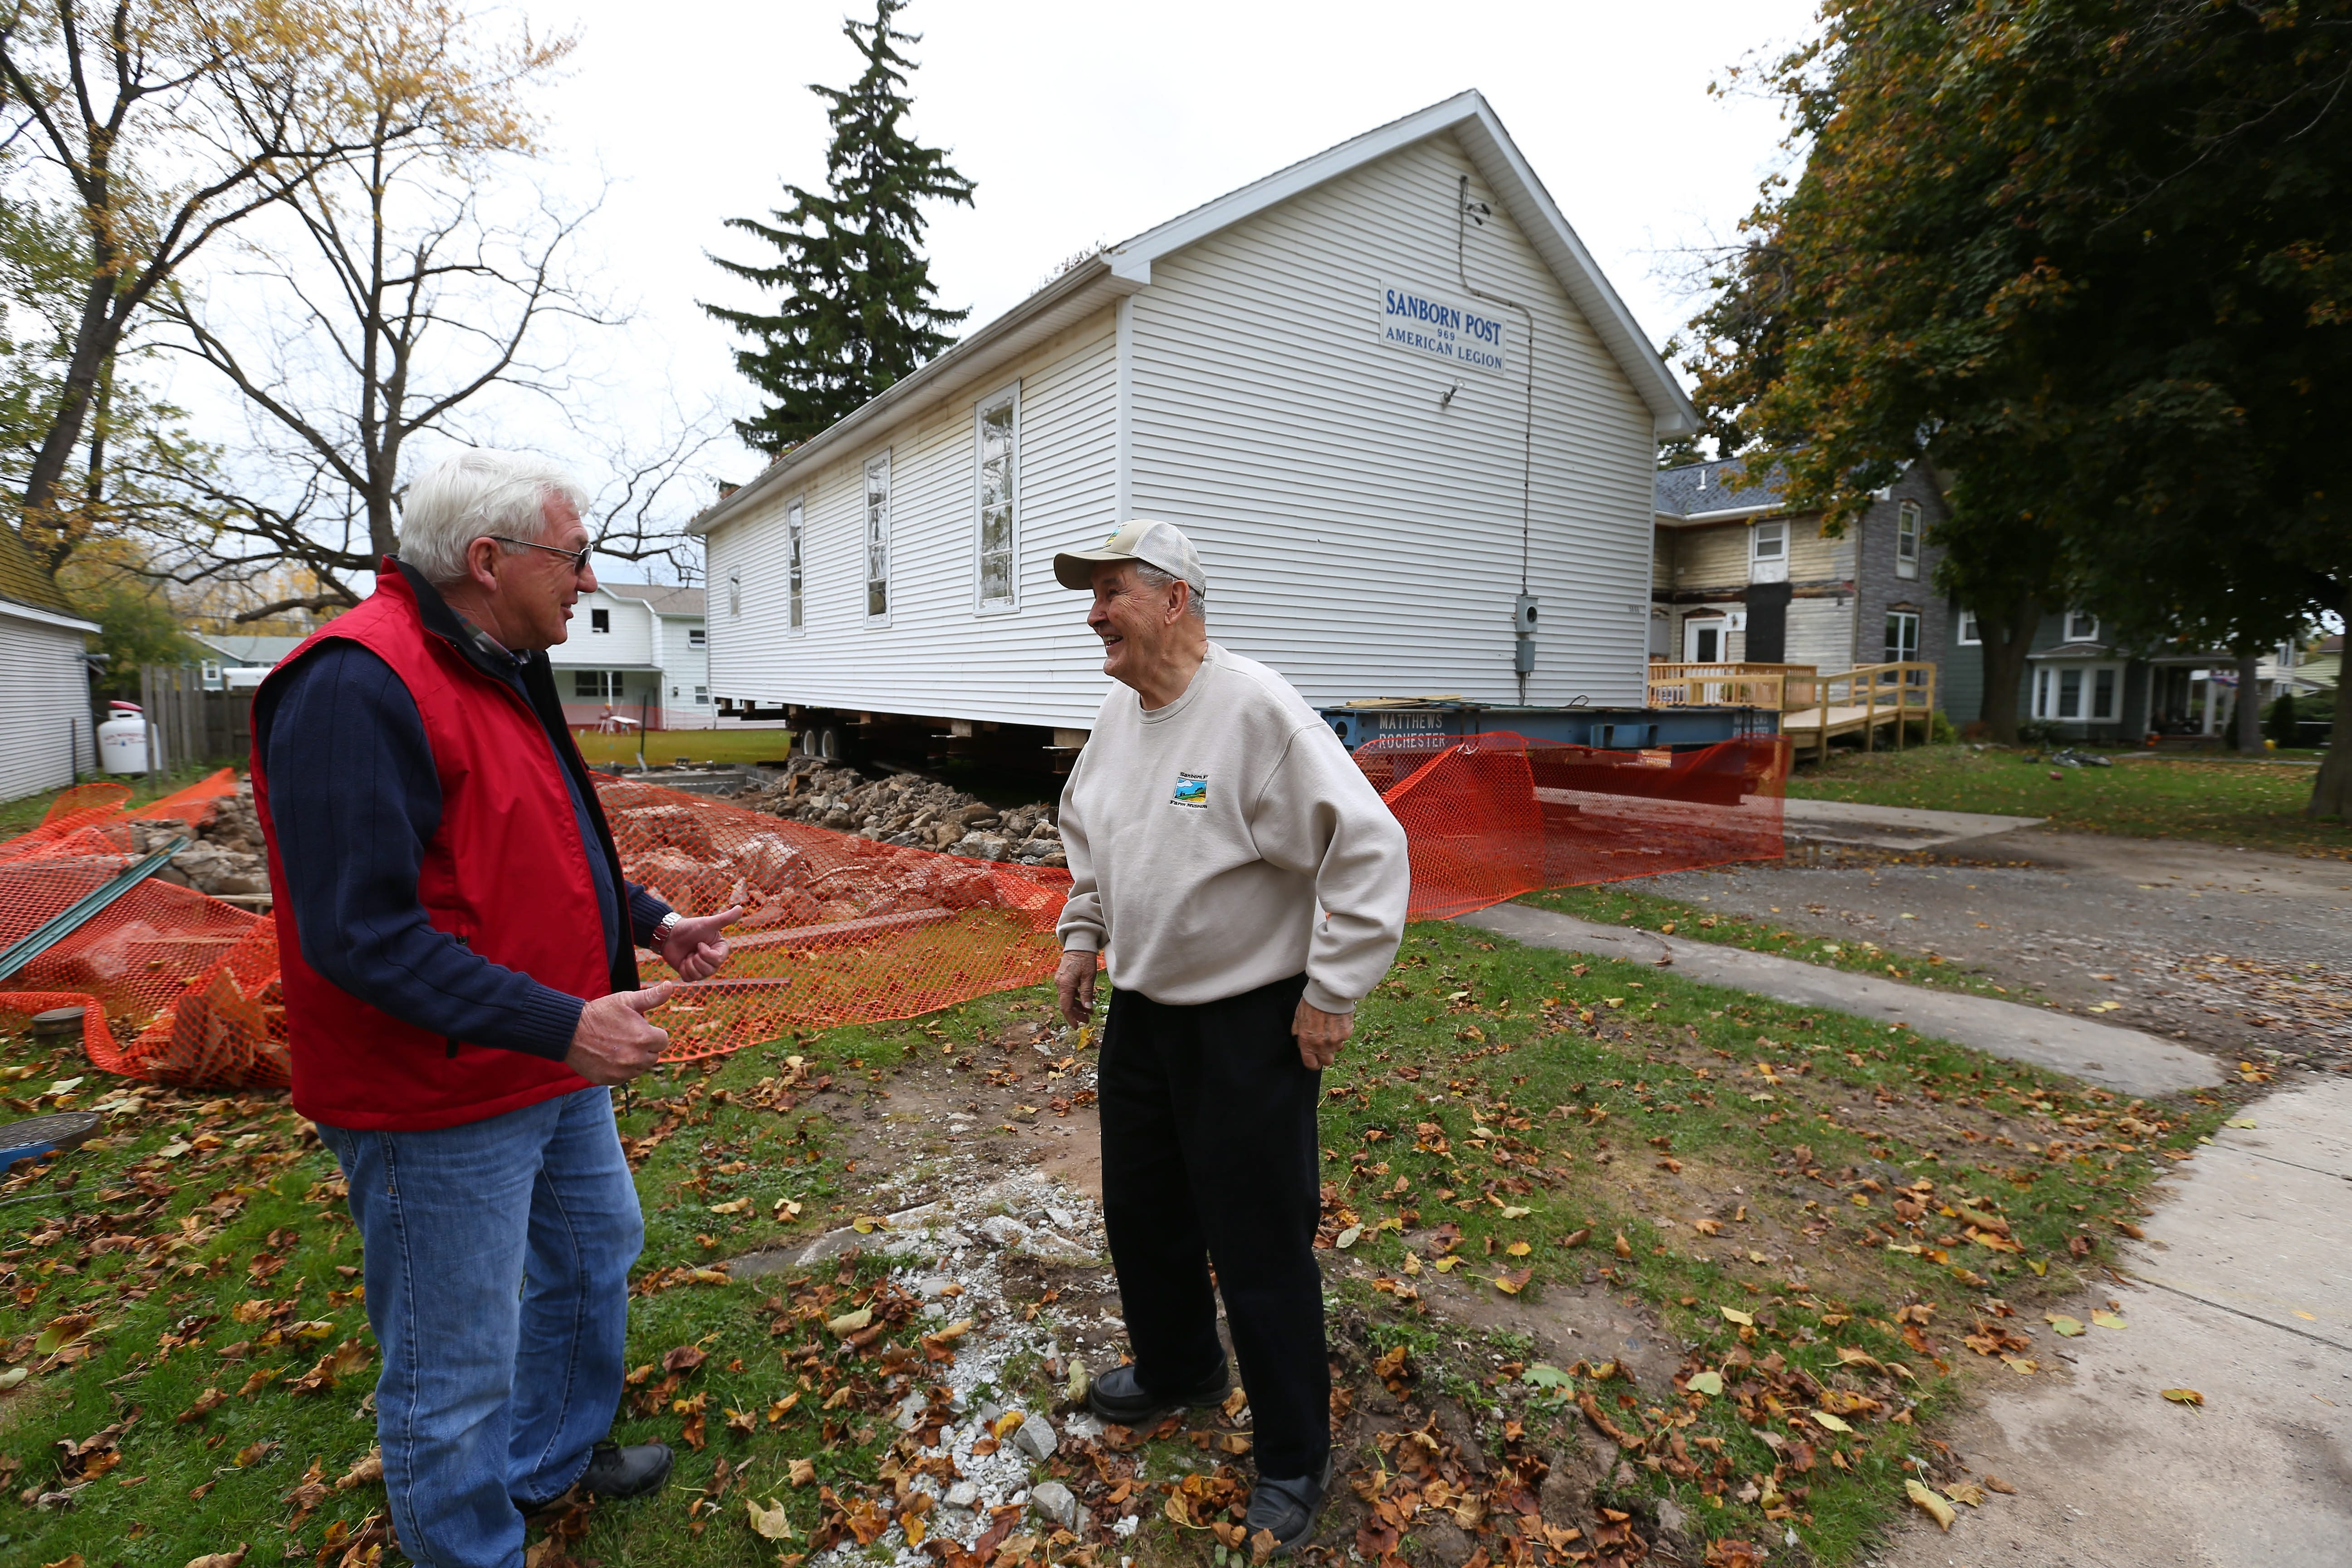 Bill Sterner and Gerry Treichler, right, are leading an ambitious plan to move a 189-year-old building to the Sanborn-Lewiston Farm Museum. The building has served as home to a number of churches and more recently the Sanborn post of the American Legion.